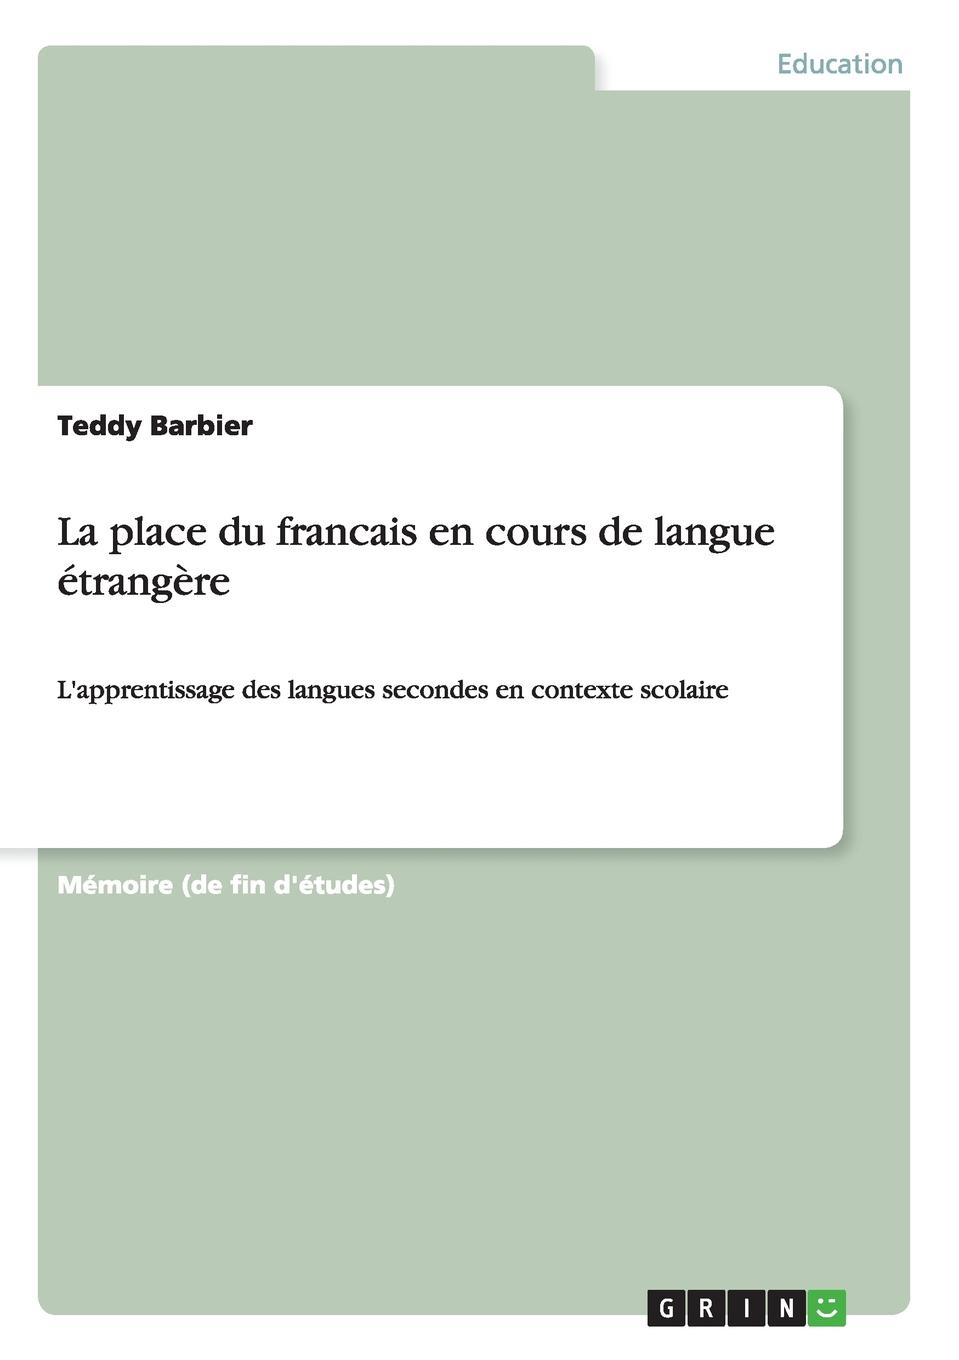 Teddy Barbier La place du francais en cours de langue etrangere kerstin köck language acquisition nativism vs contructivism